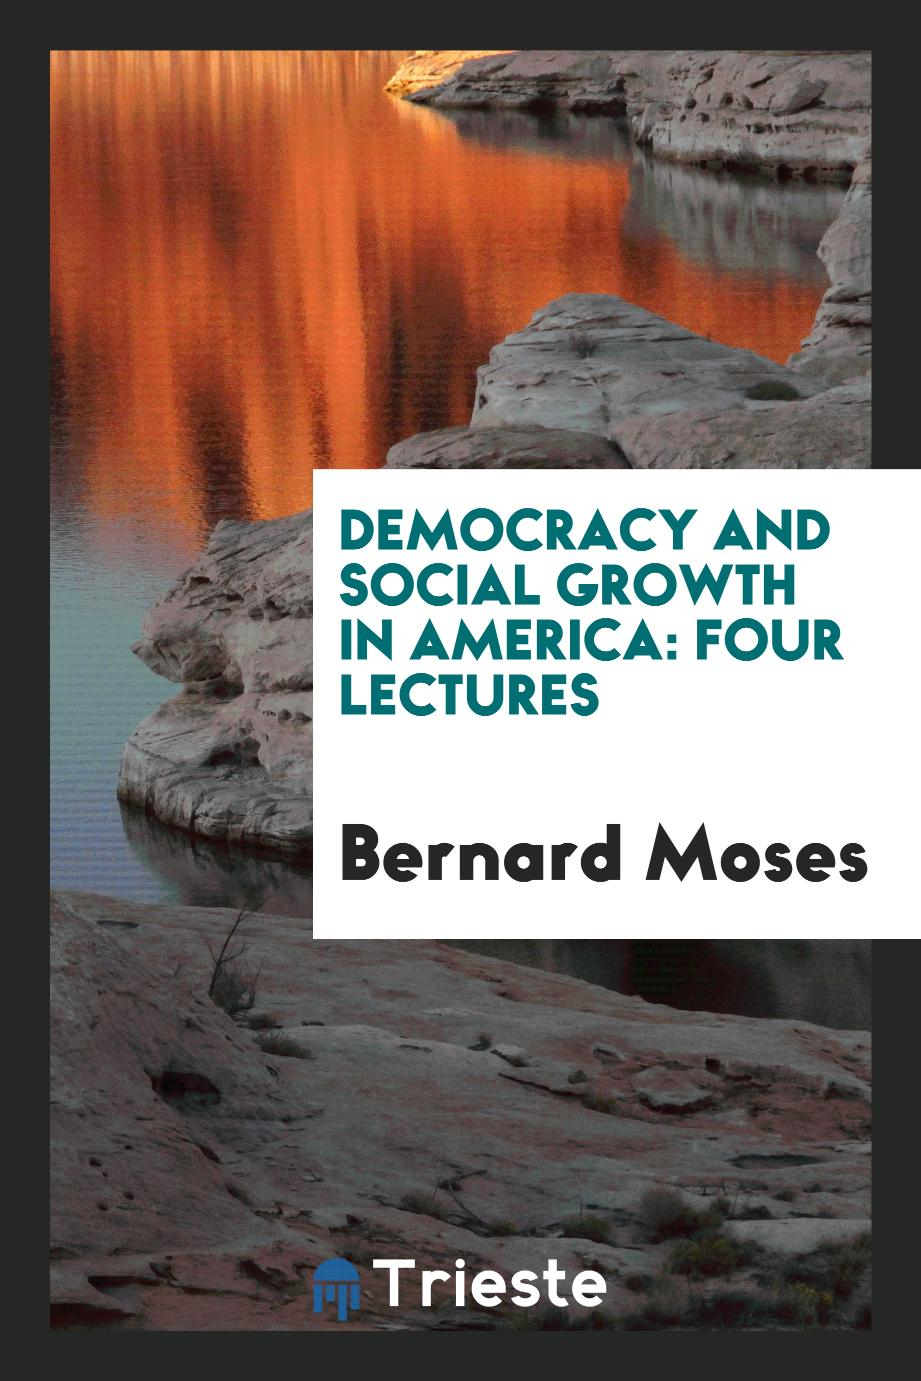 Democracy and Social Growth in America: Four Lectures